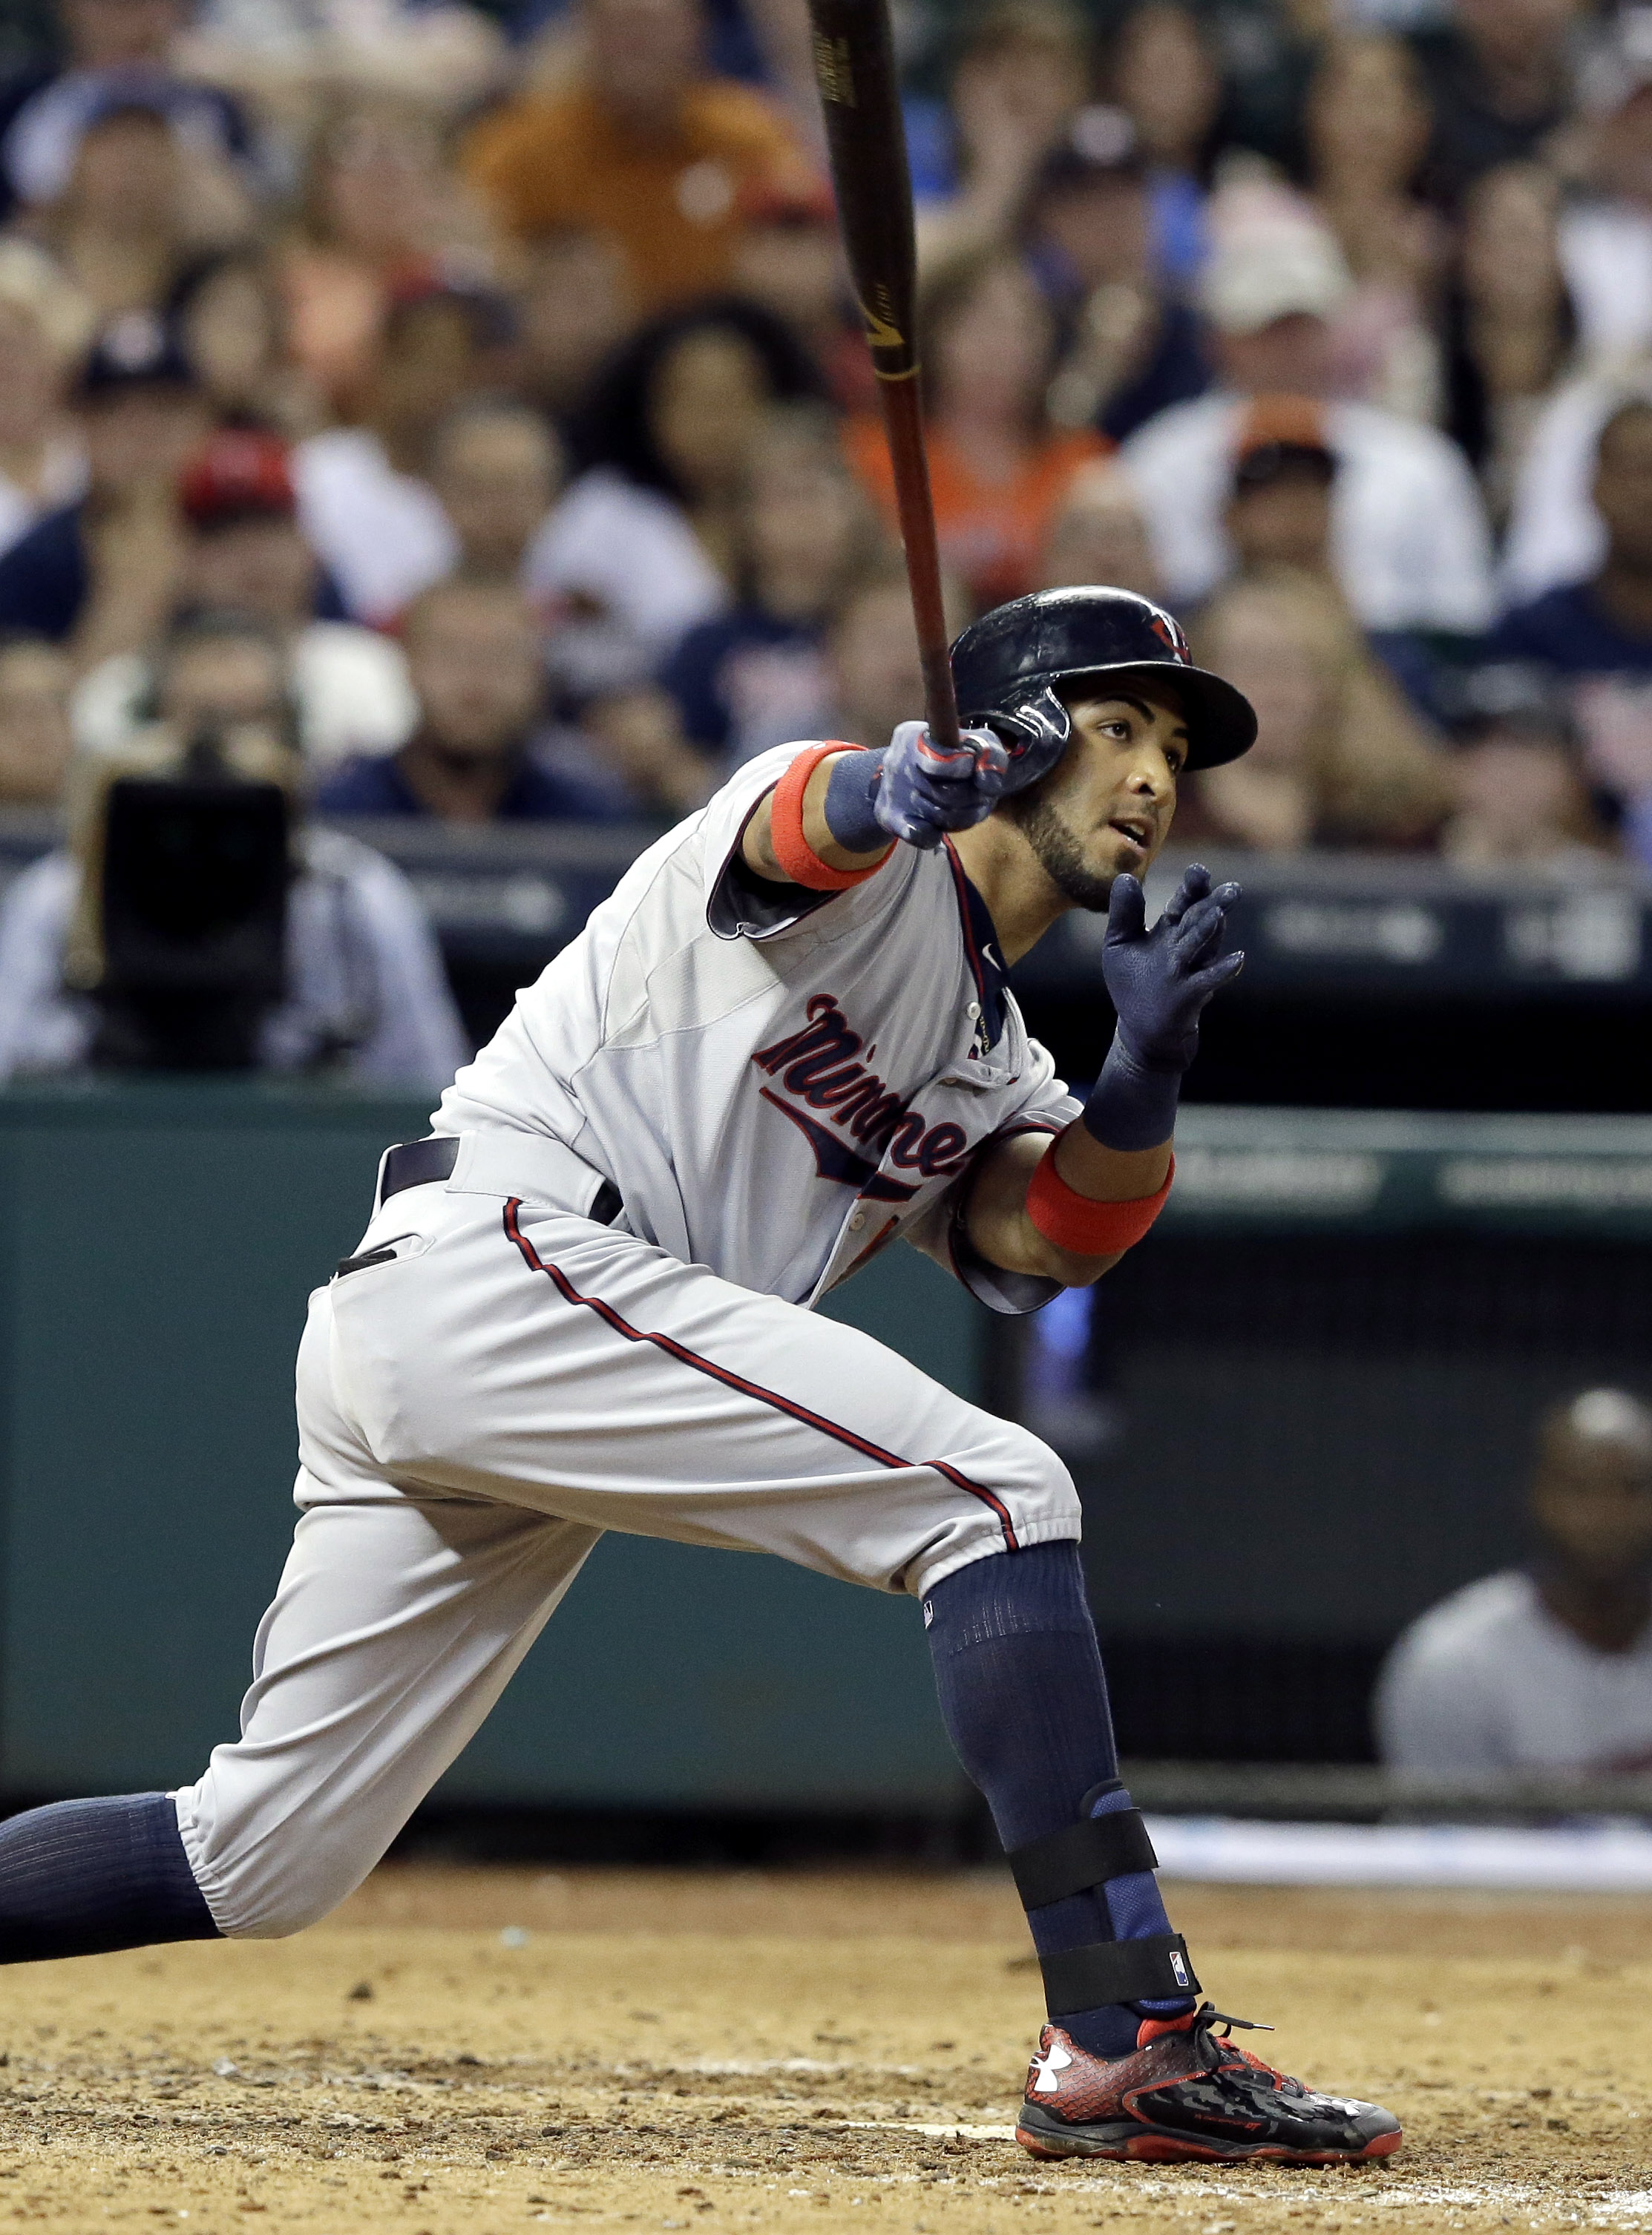 Minnesota Twins' Eddie Rosario watch as the ball goes long to right field for a two-run triple against the Houston Astros in the ninth inning of a baseball game Saturday, Sept. 5, 2015, in Houston. (AP Photo/Pat Sullivan)